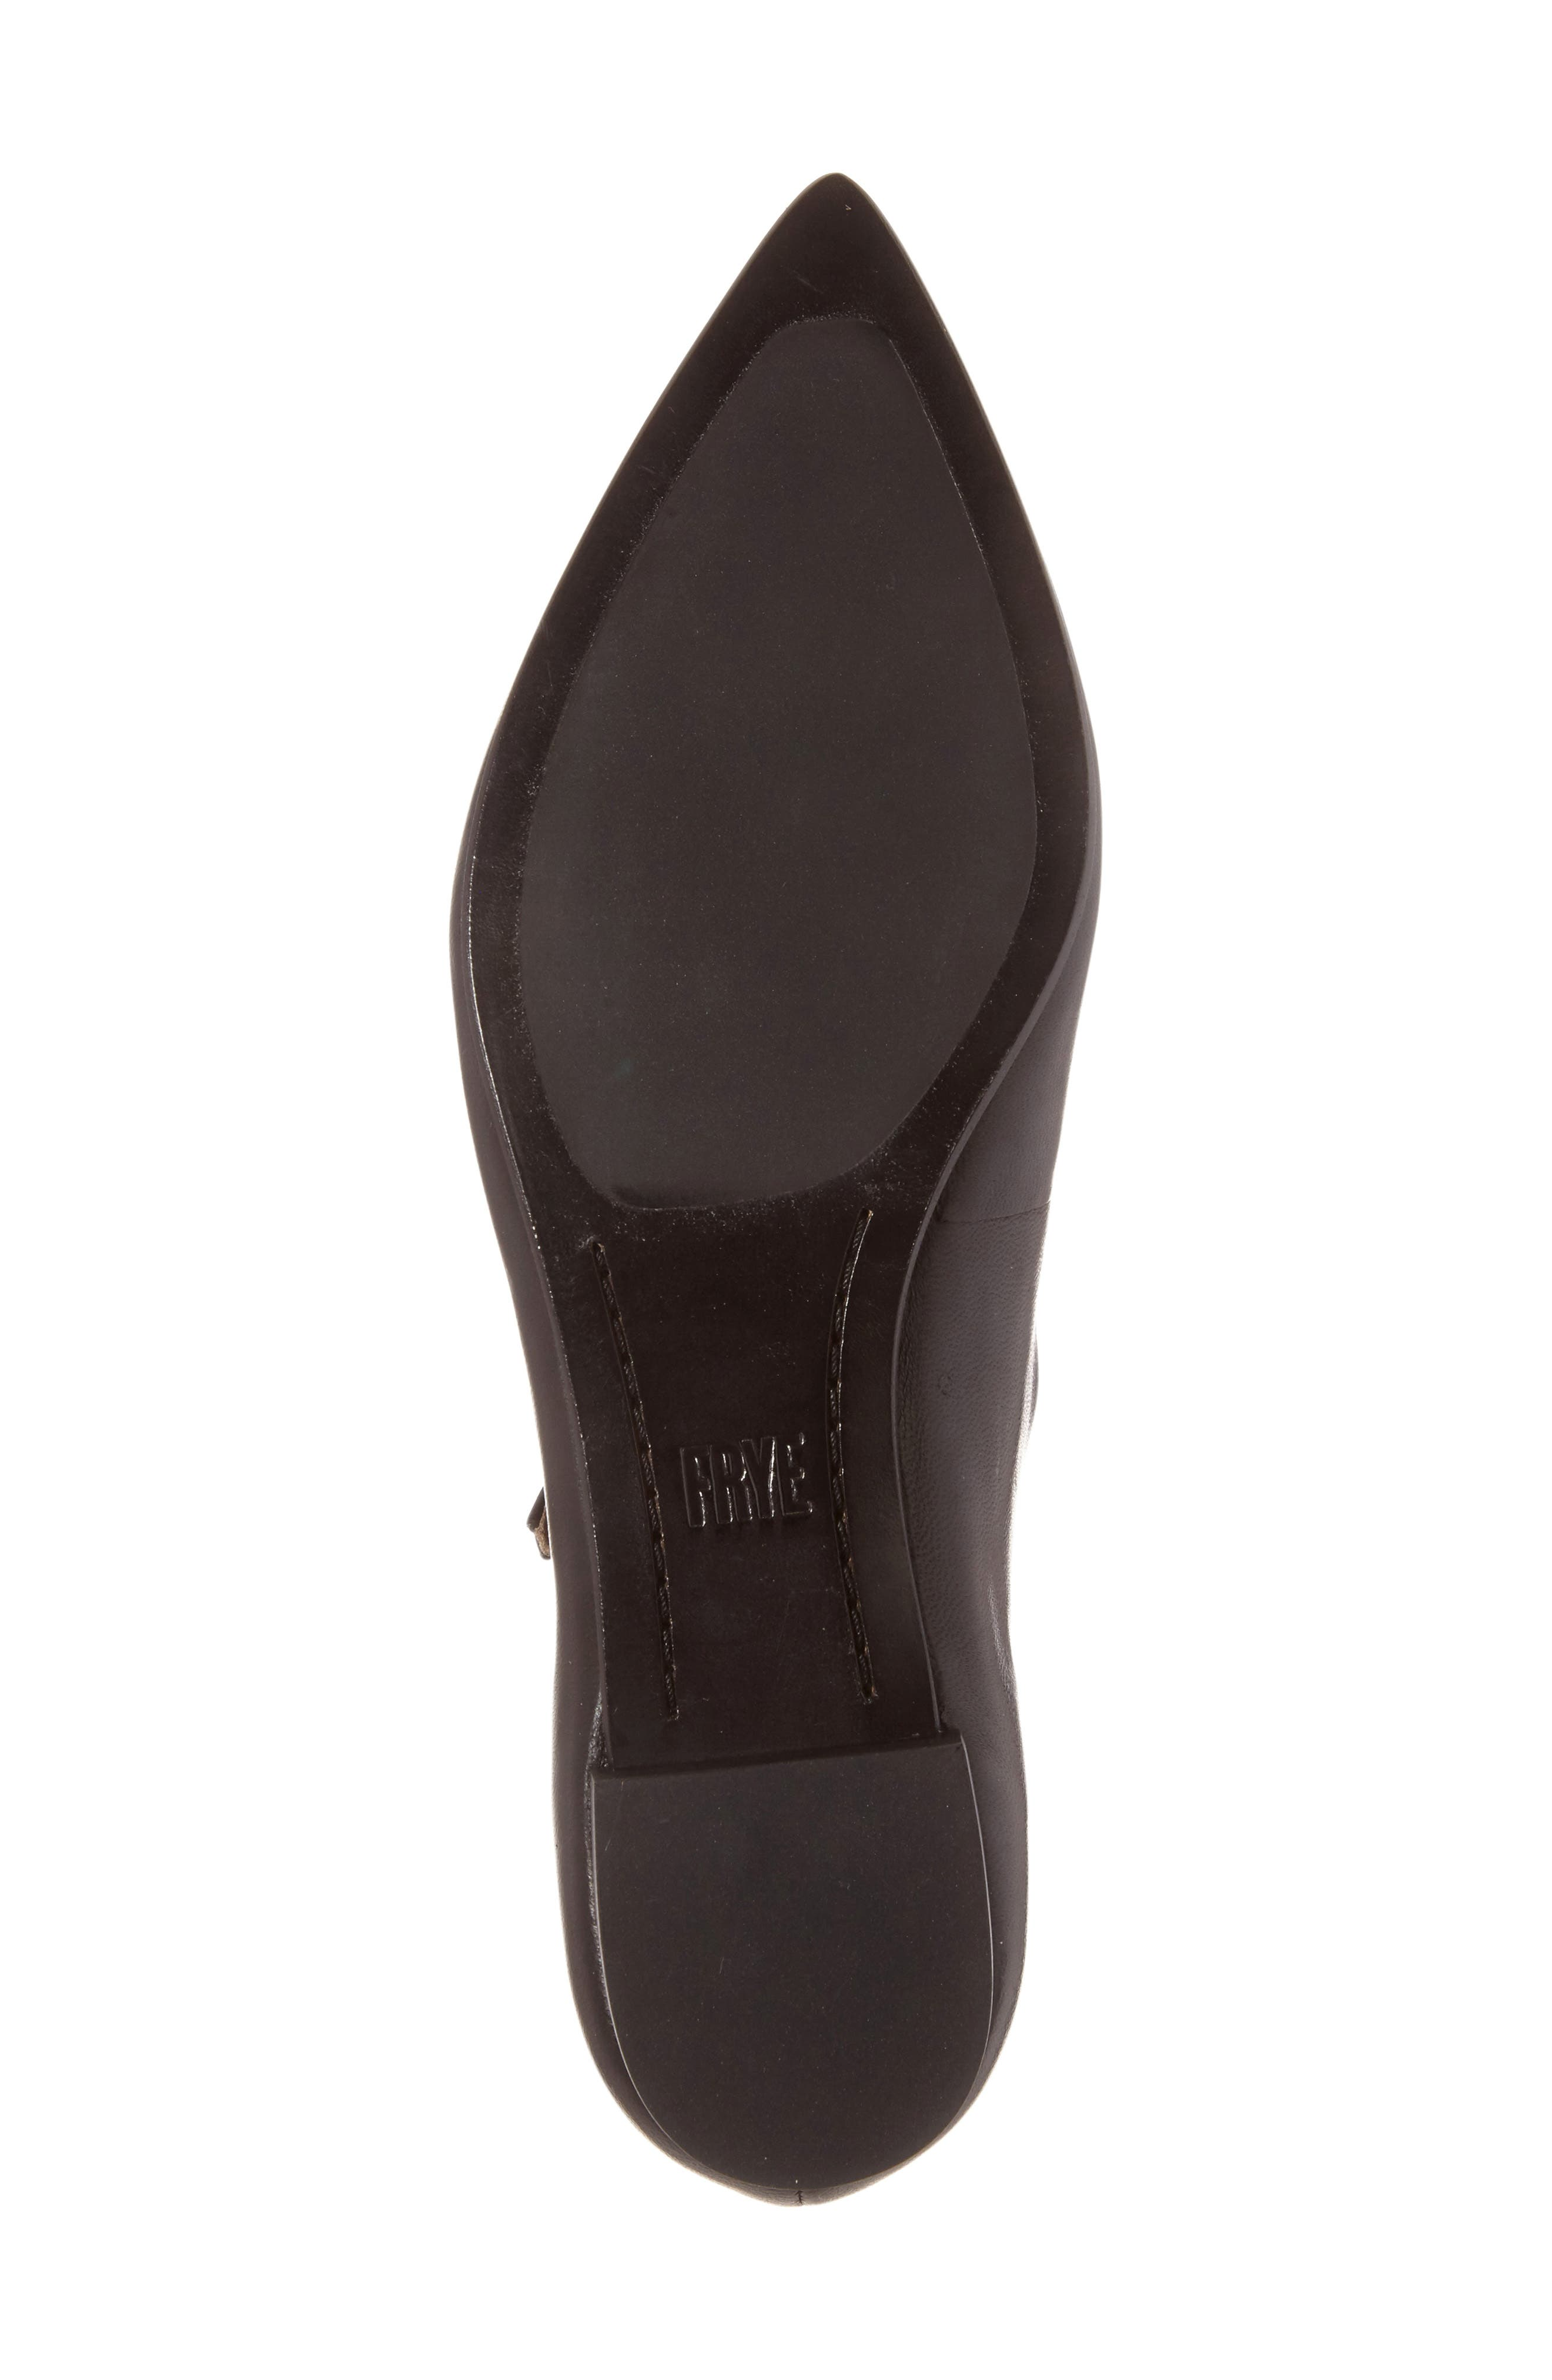 Sienna Cross Ballet Flat,                             Alternate thumbnail 10, color,